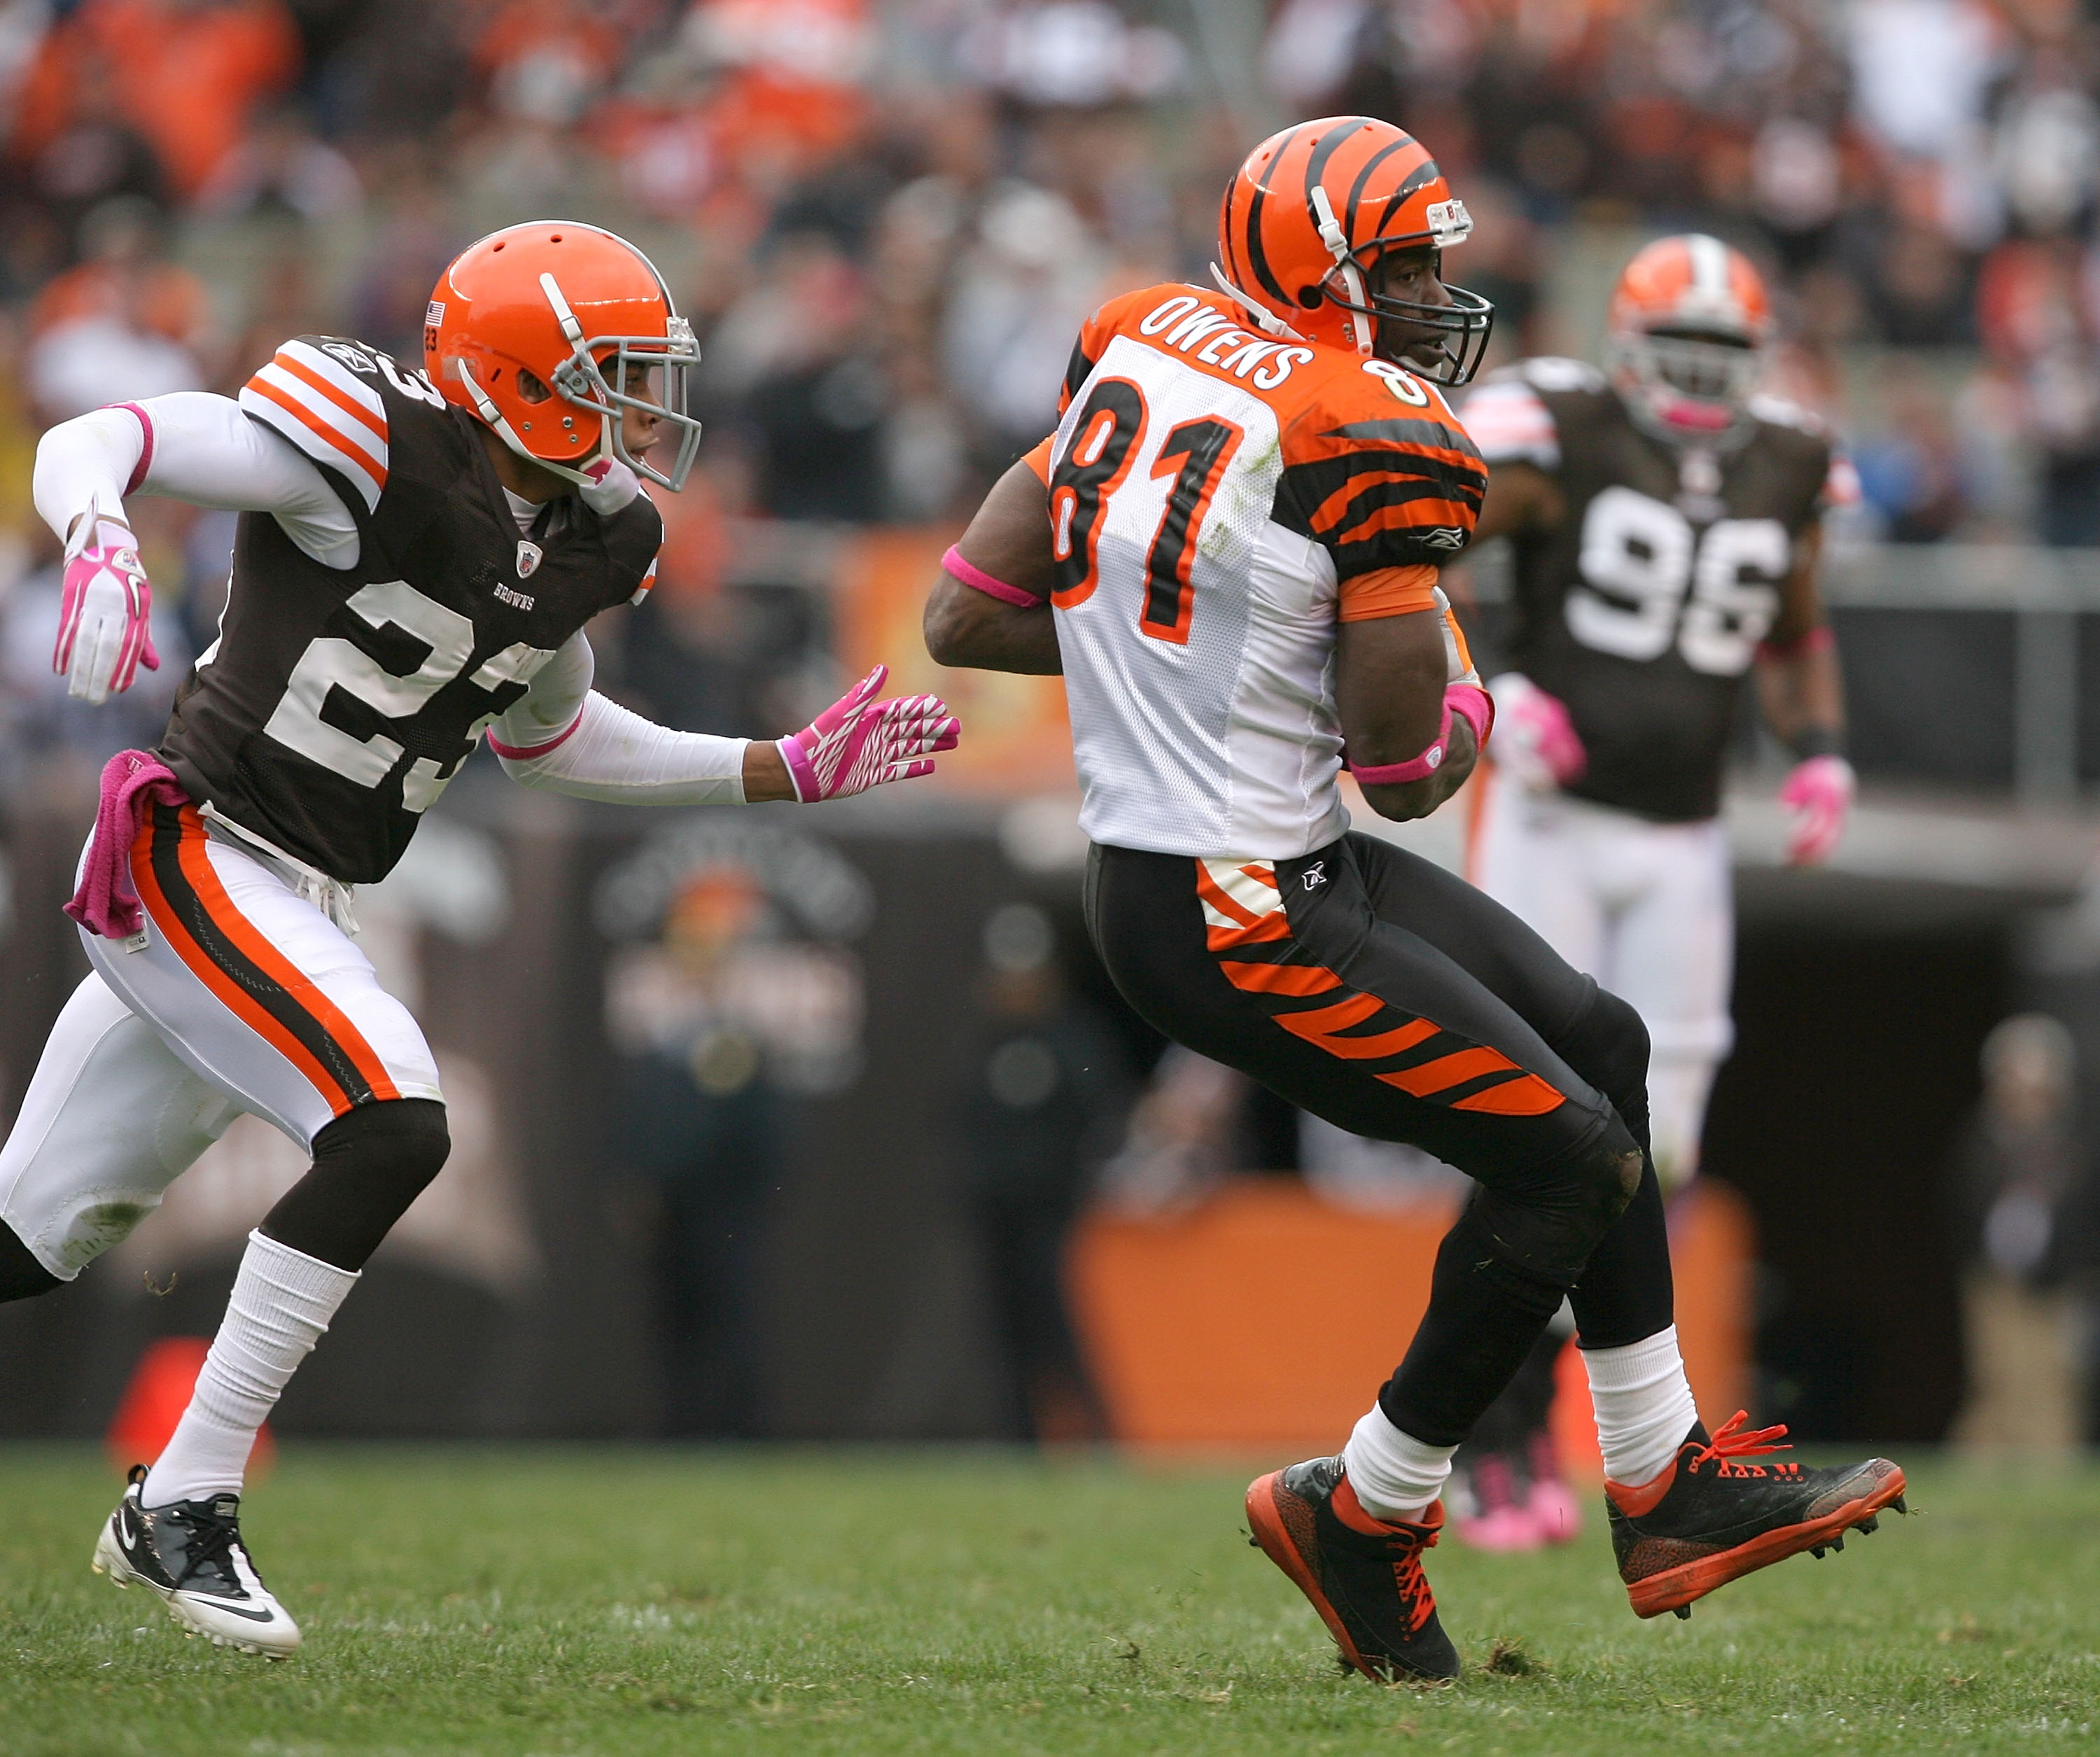 Despite T.O.'s explosion, the Bengals dropped to the Browns